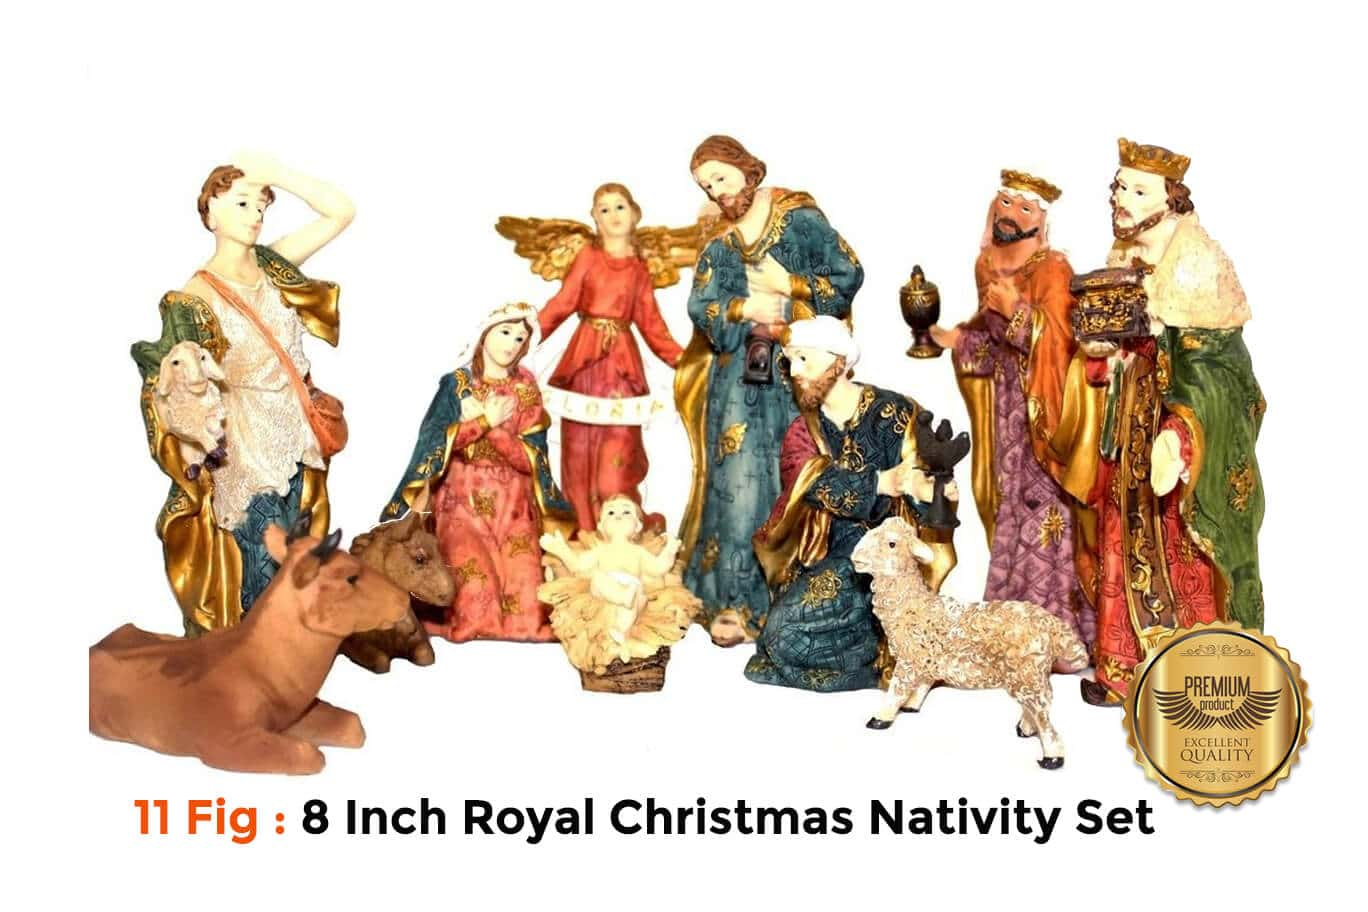 Christmas Nativity.Royal Christmas Nativity Set 8 Inch